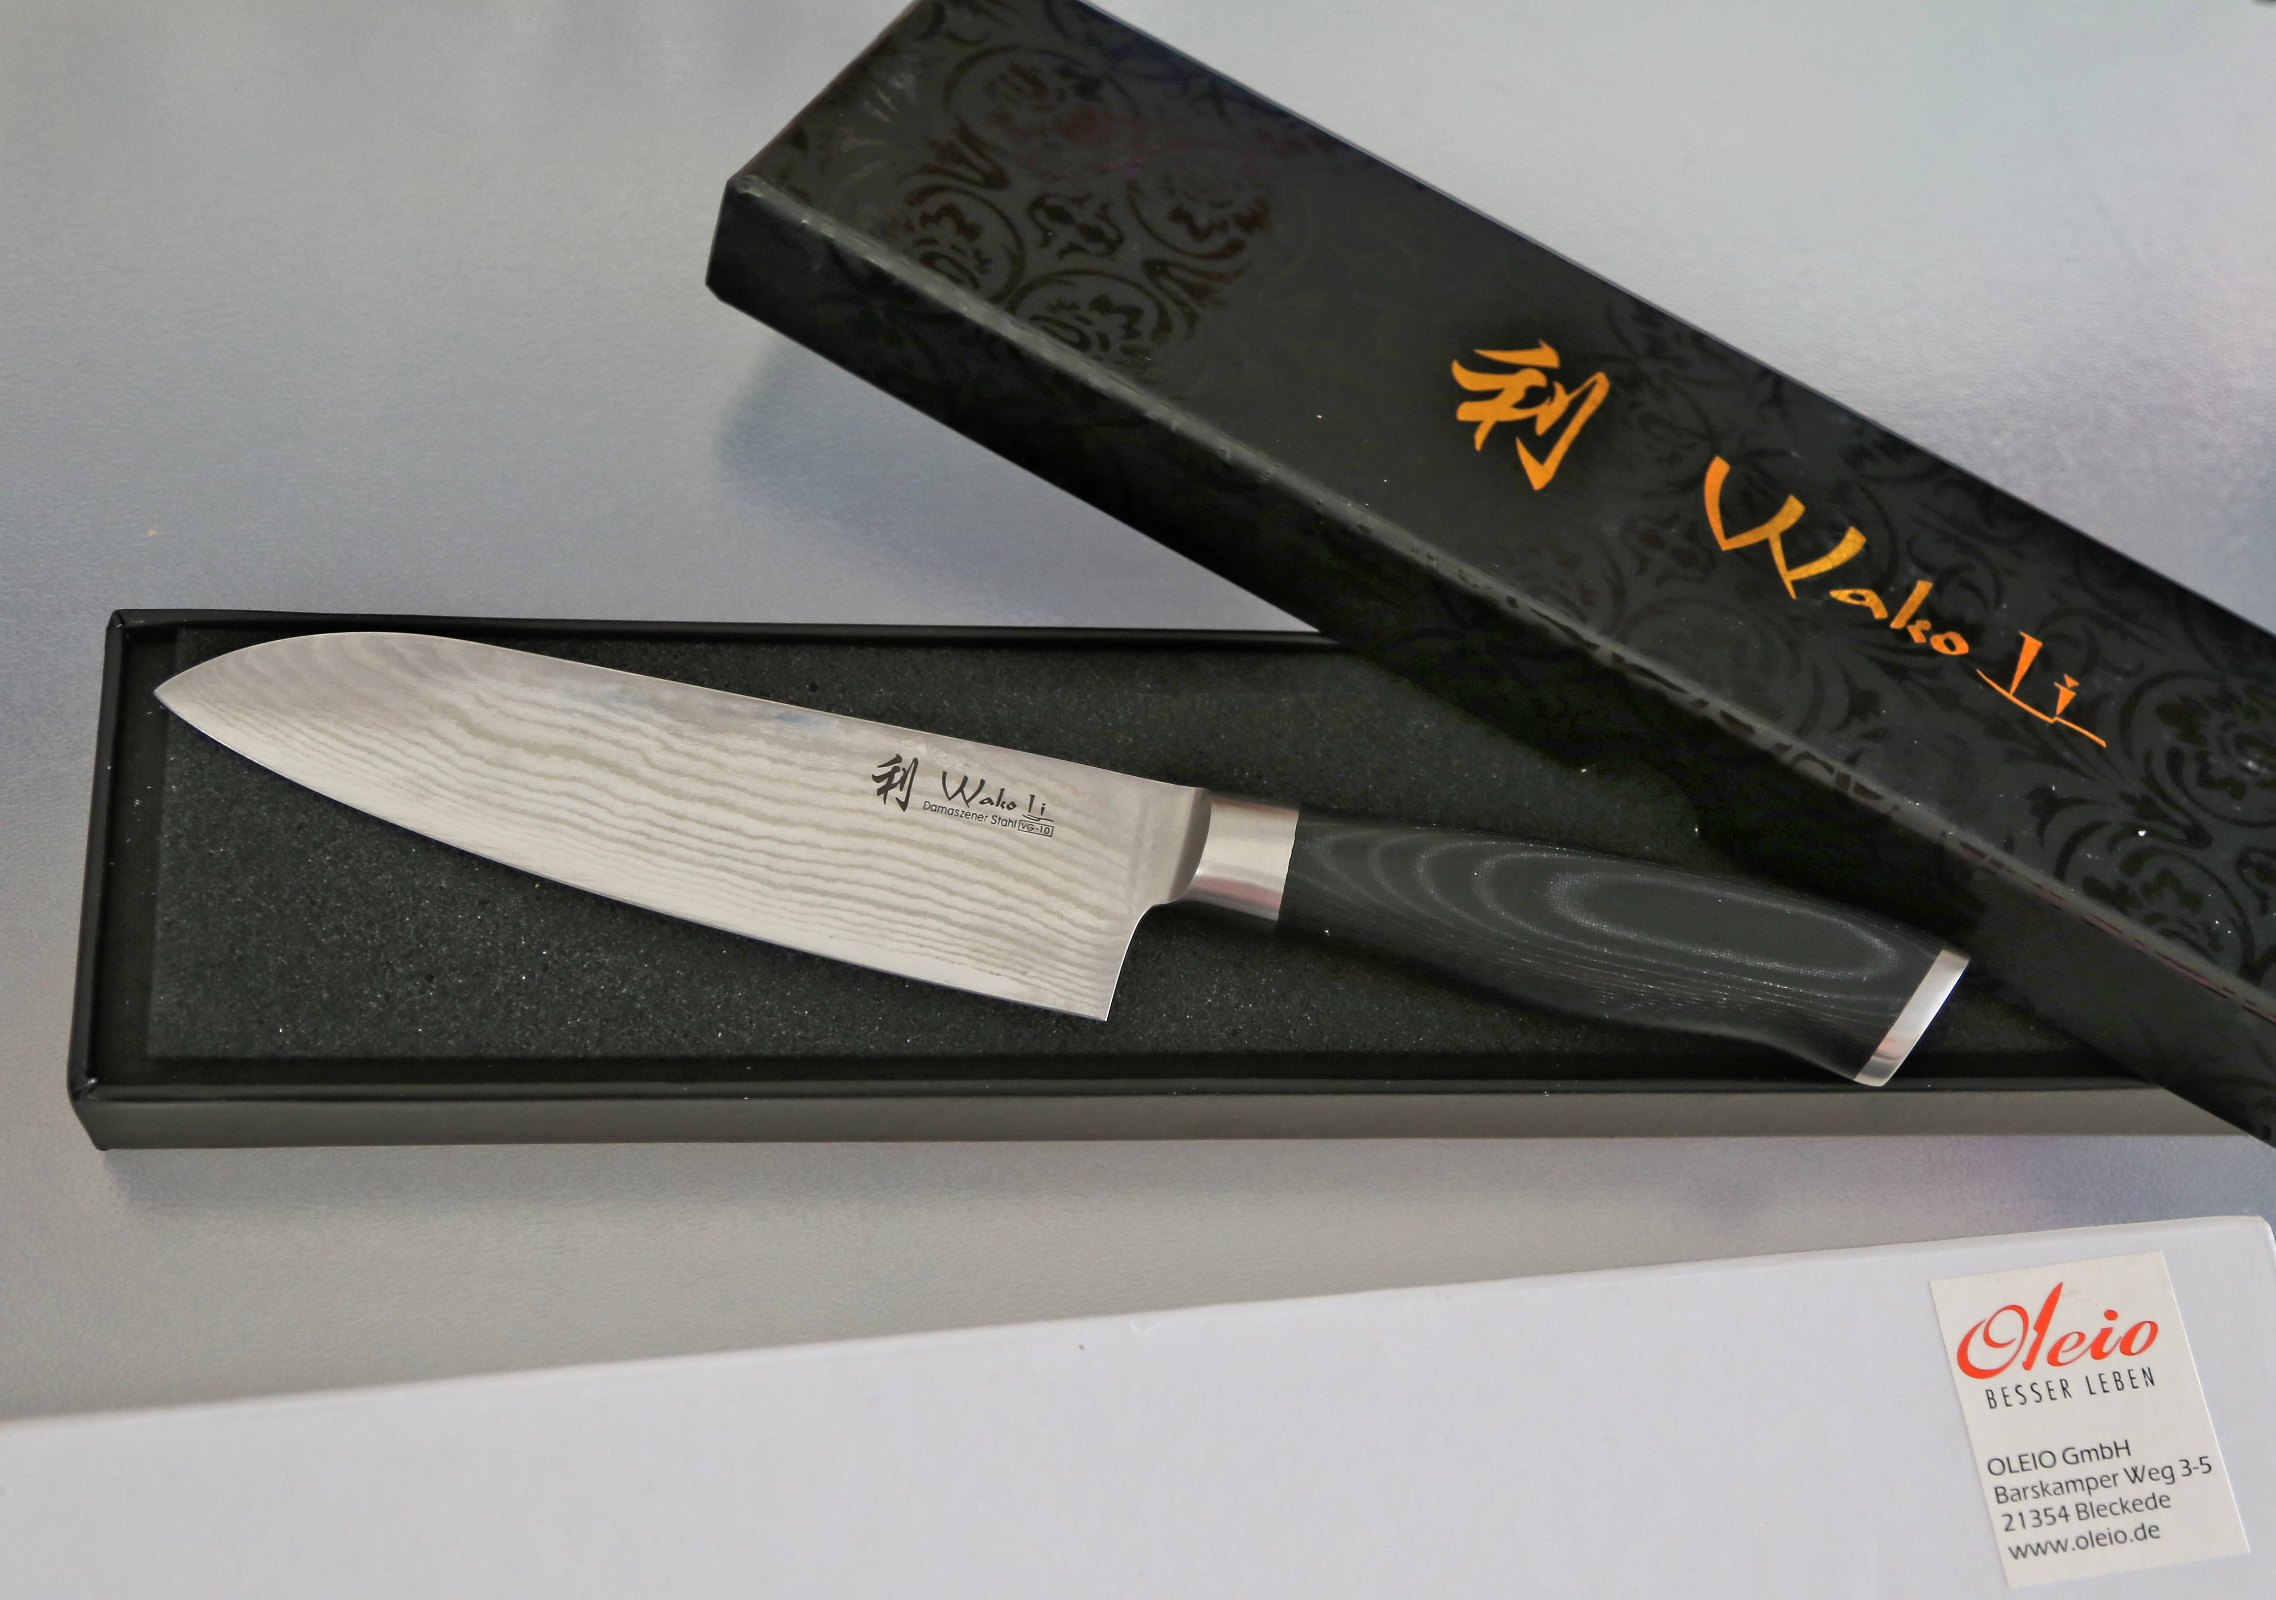 Wakoli 1DM-SAN-MIK Santoku Damascus Knife, Japanese Damascus Steel VG-10, Mikata Handle